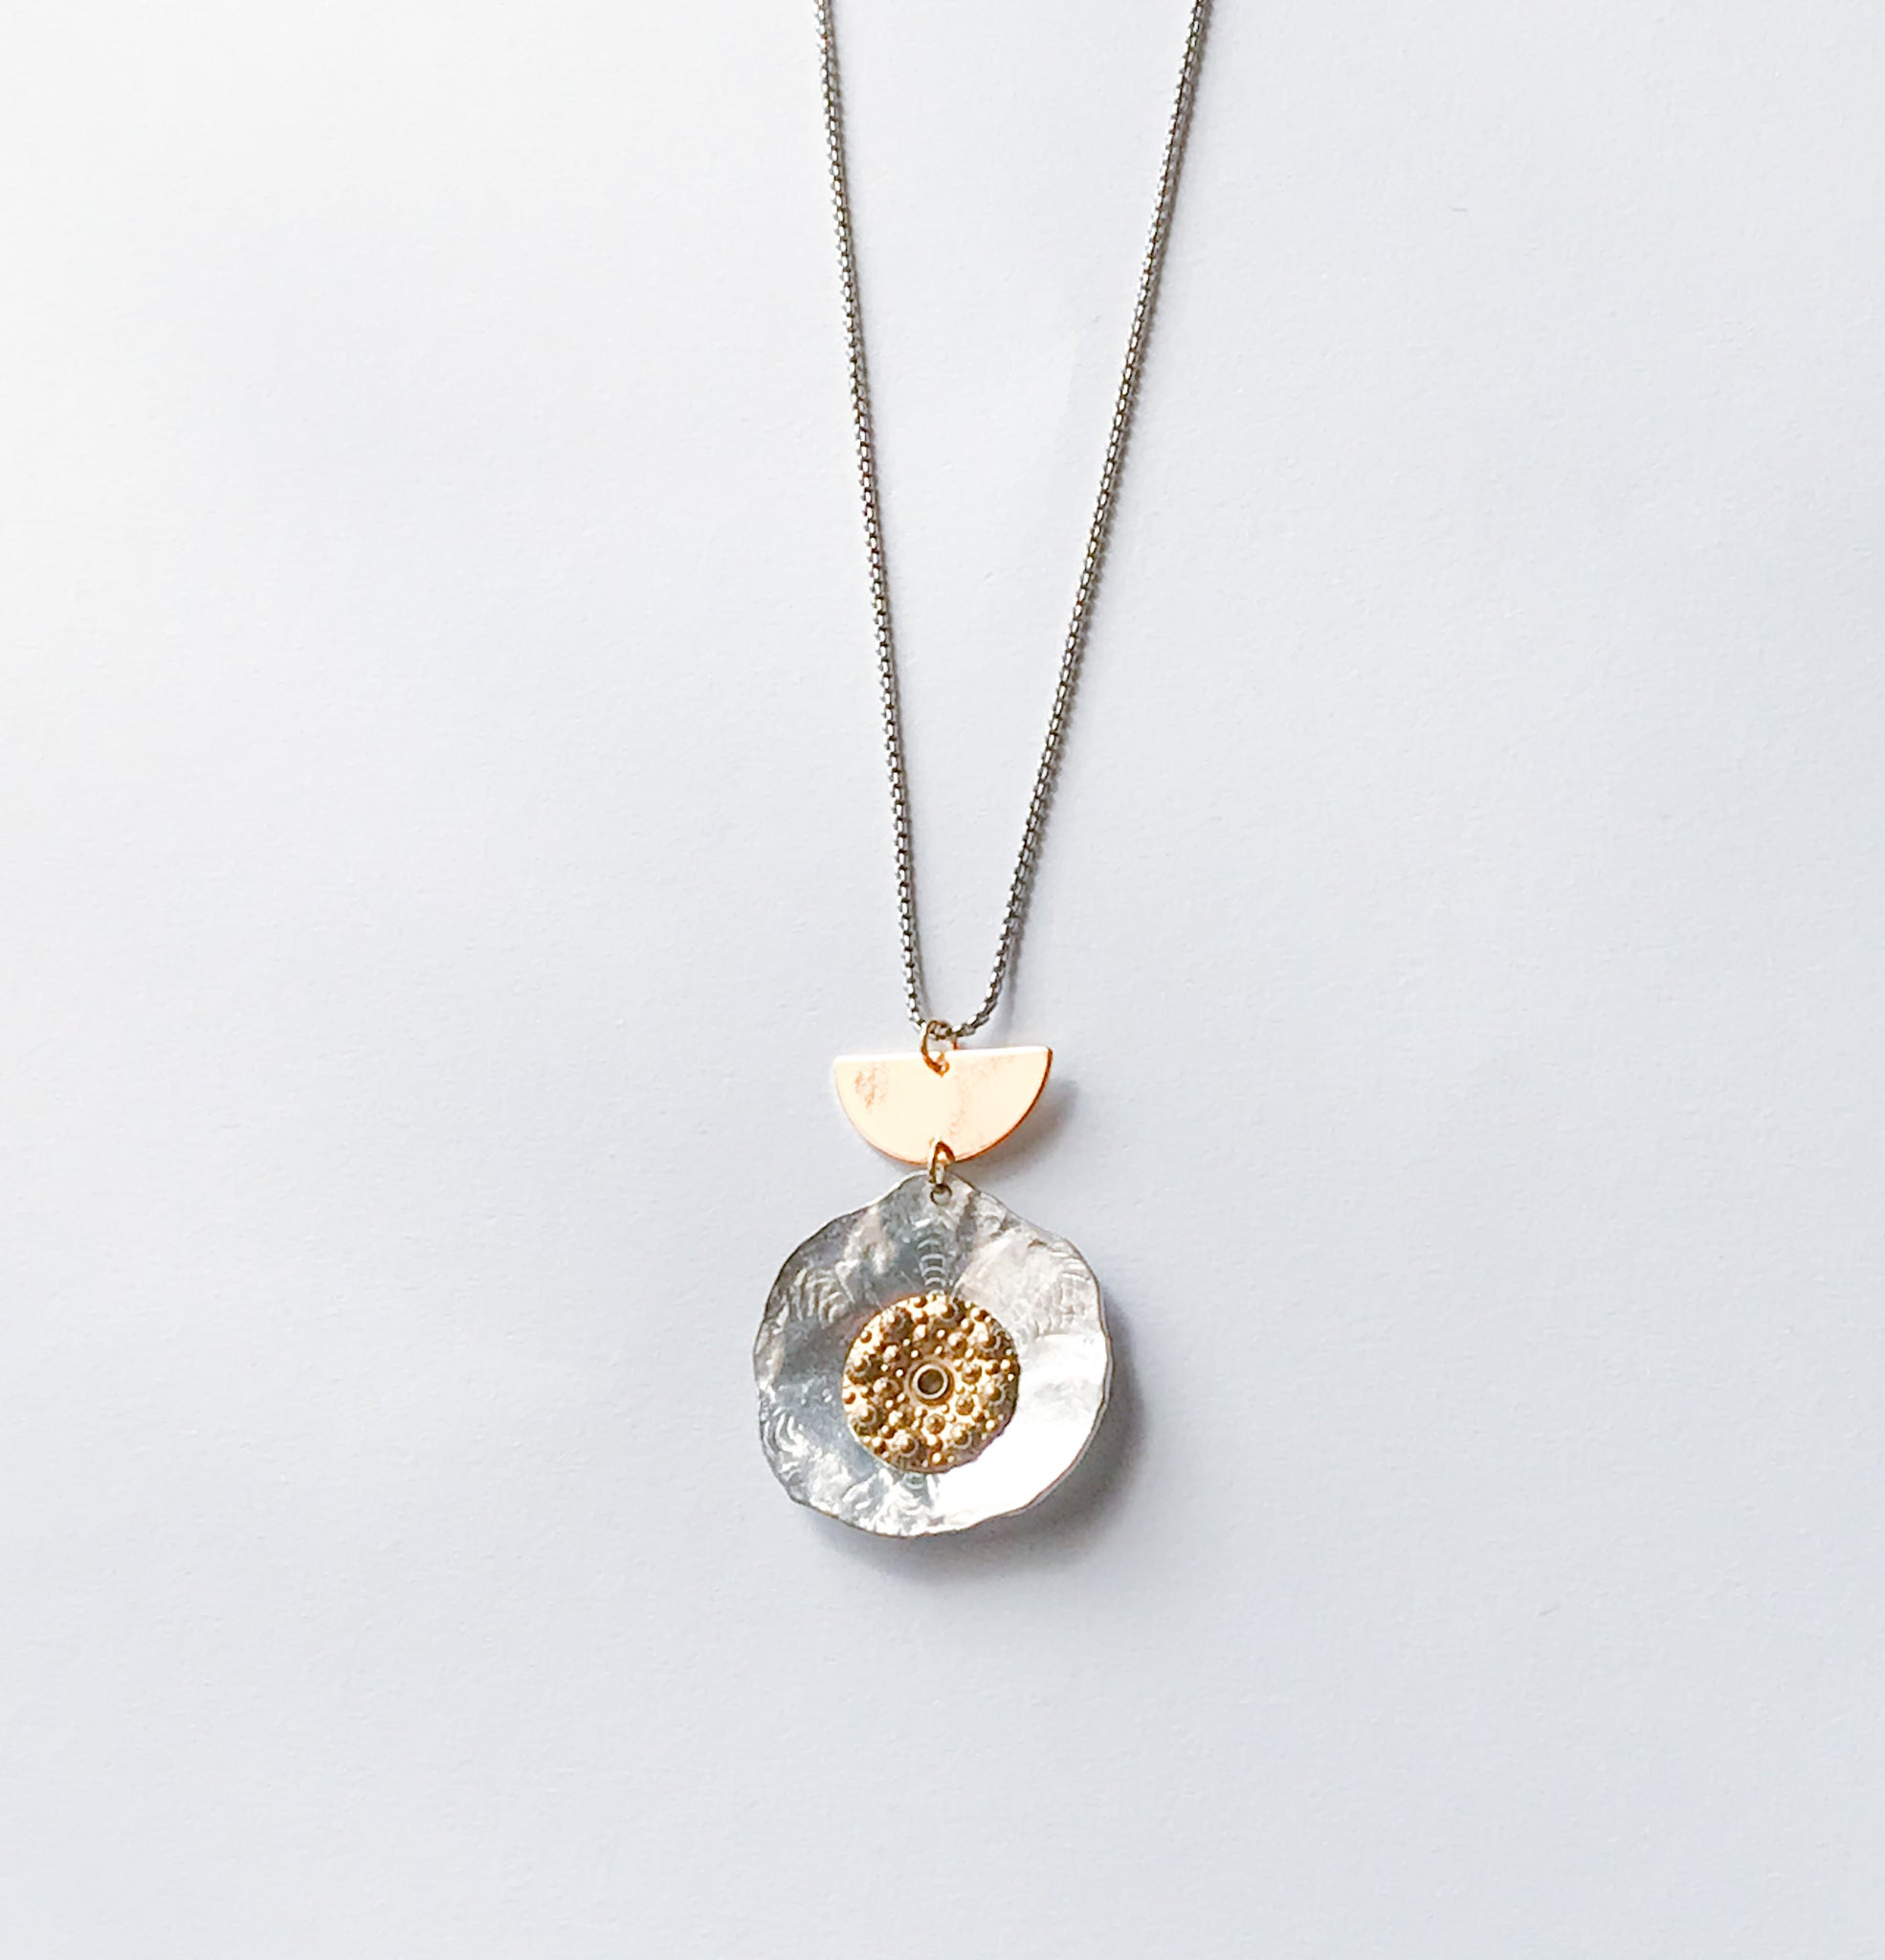 Gold & Silver Hammered Disk Necklace